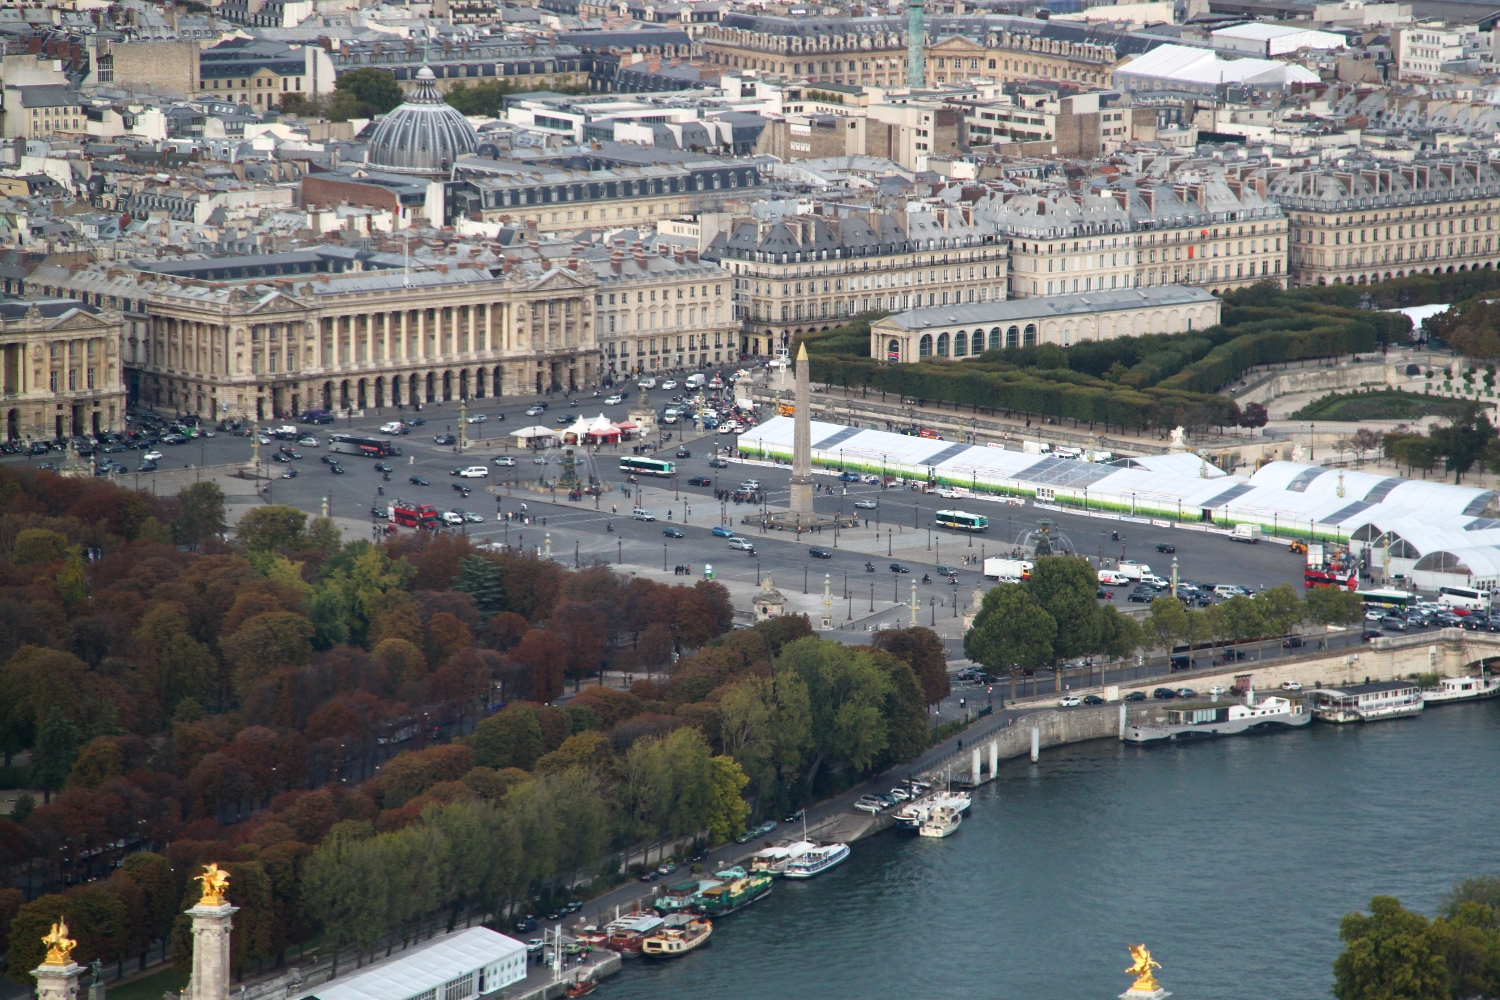 Obelisc from the Eiffel Tower